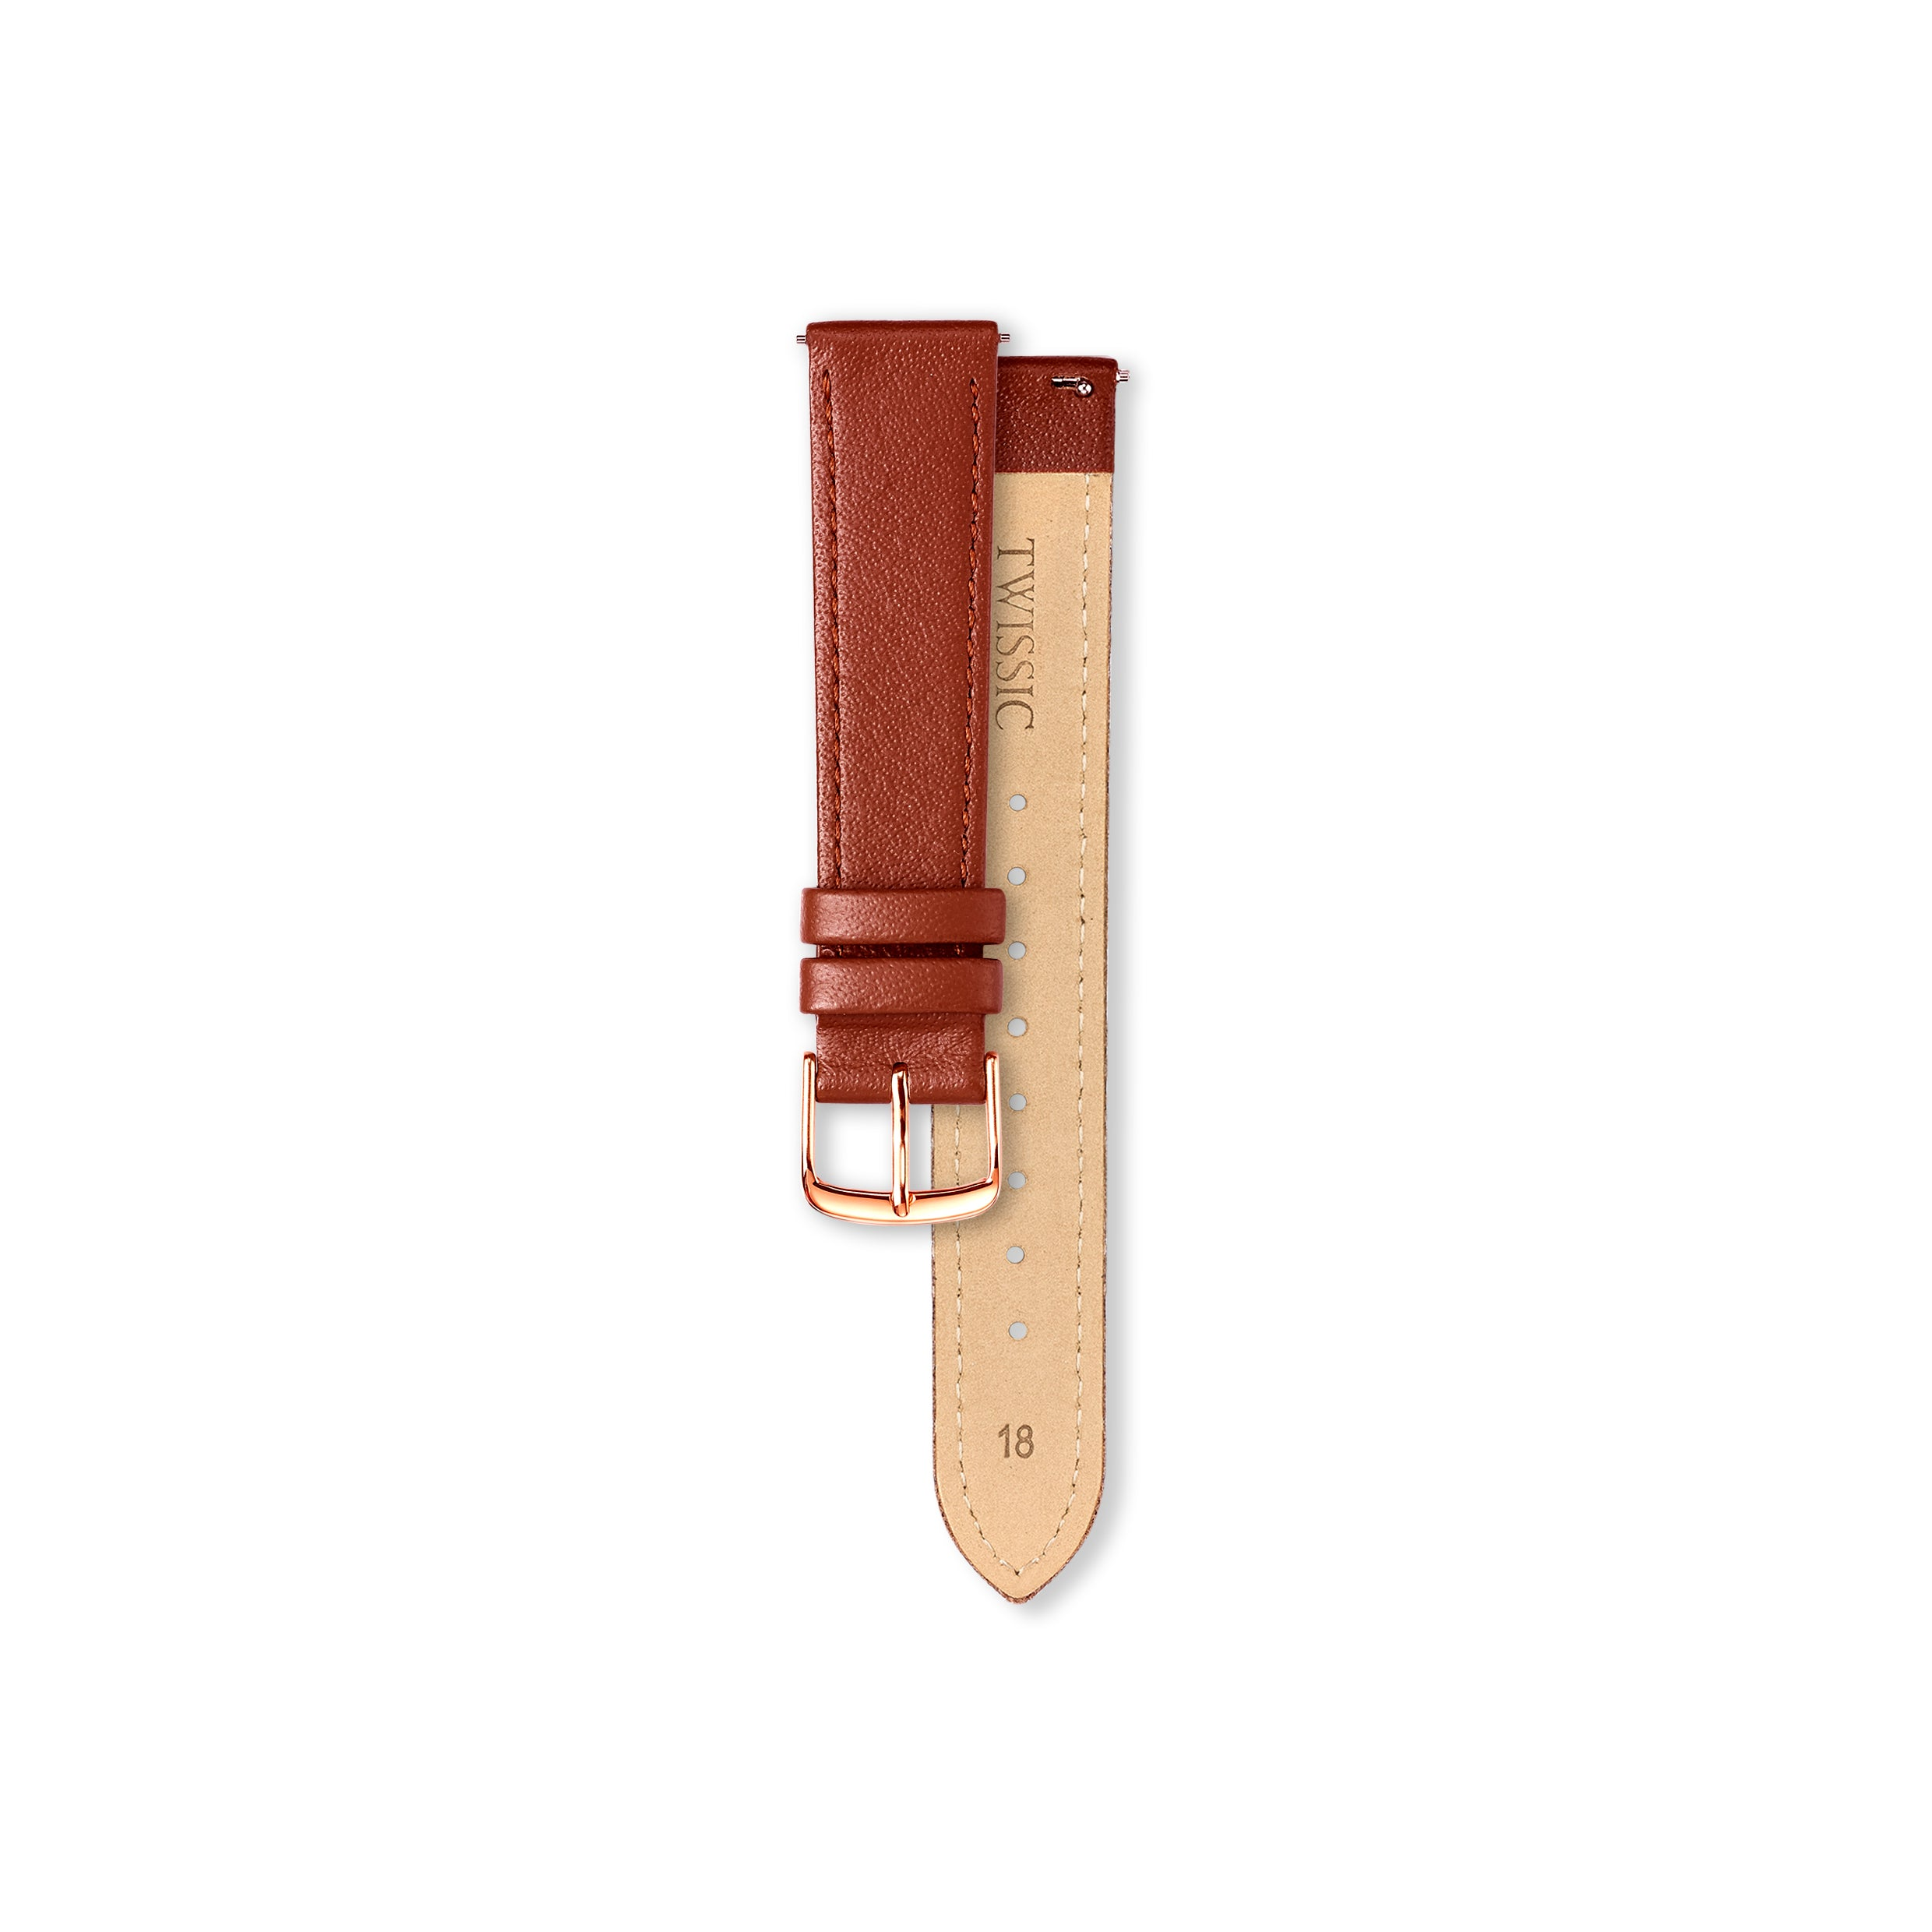 Gift Set Large (38mm/18mm) - Brick Red & Navy Straps